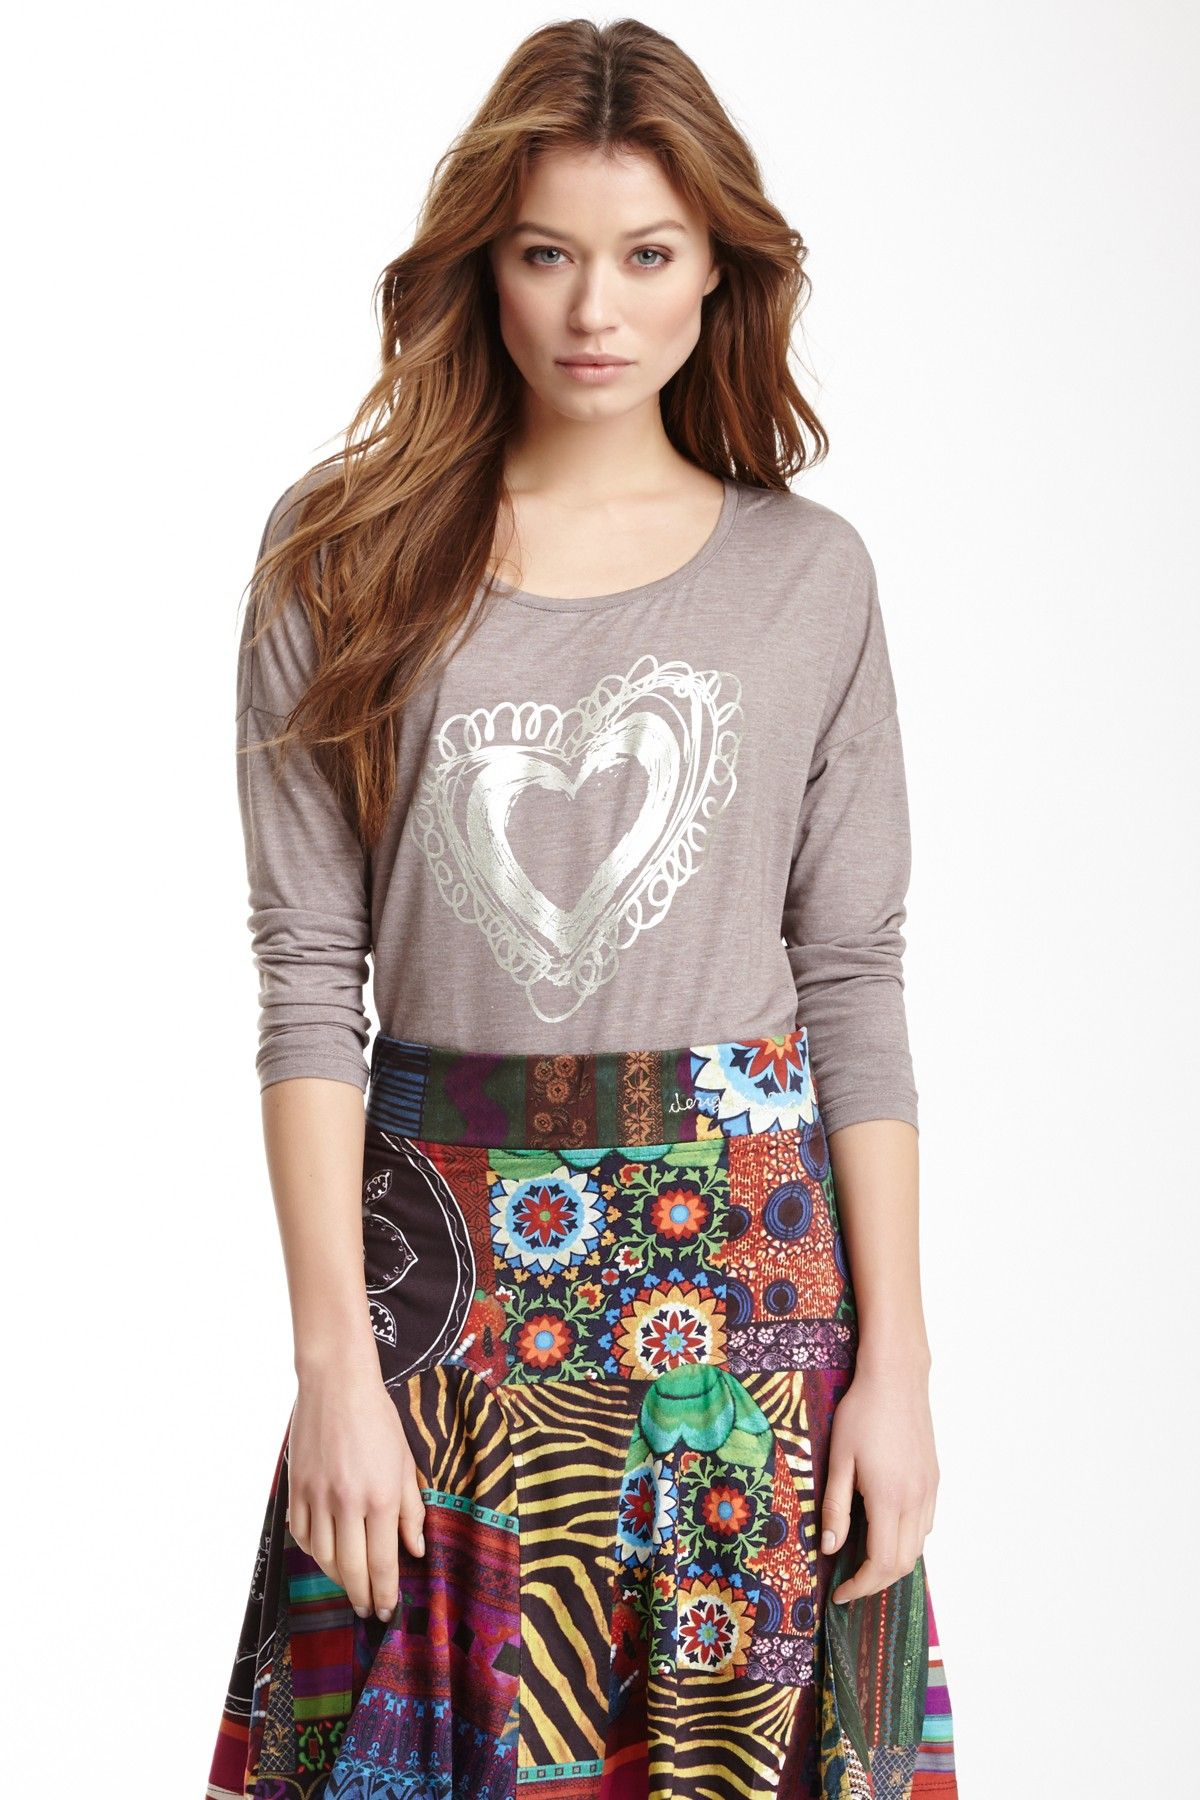 I think we could use our fabric scraps to make this skirt!